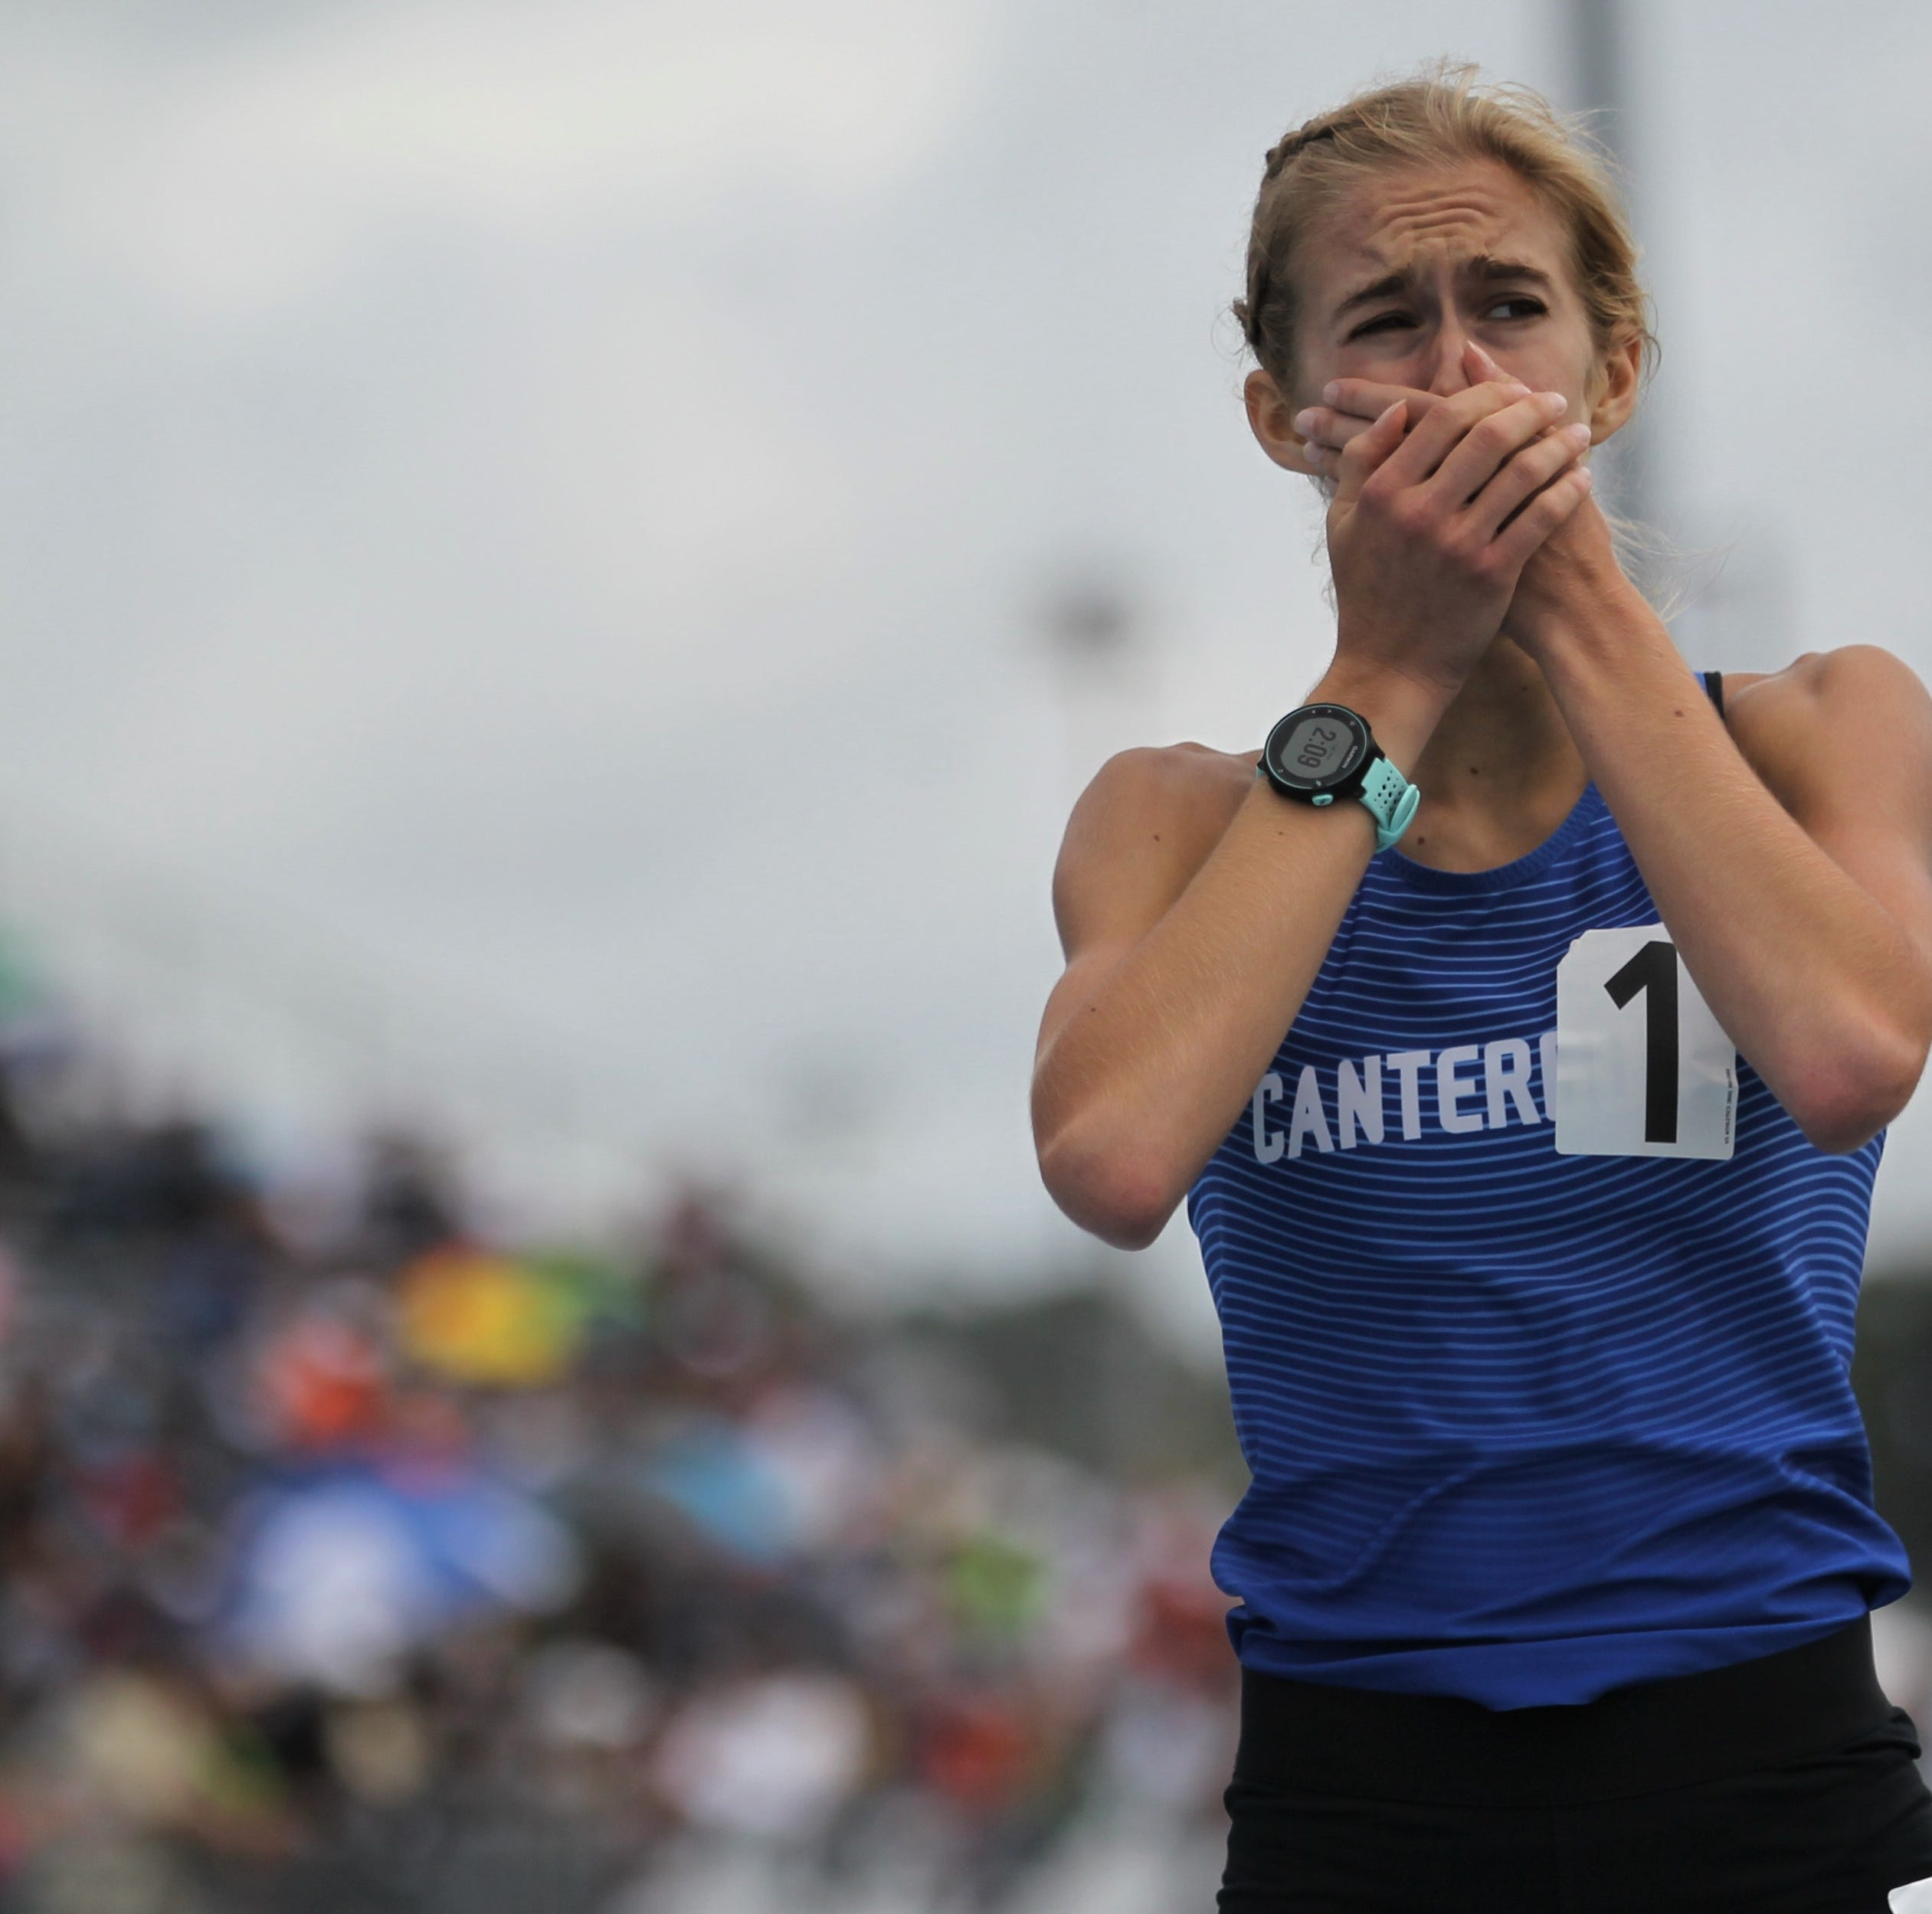 Canterbury's Edwards, Estero's Brittenham lead early state track pack win 800 titles